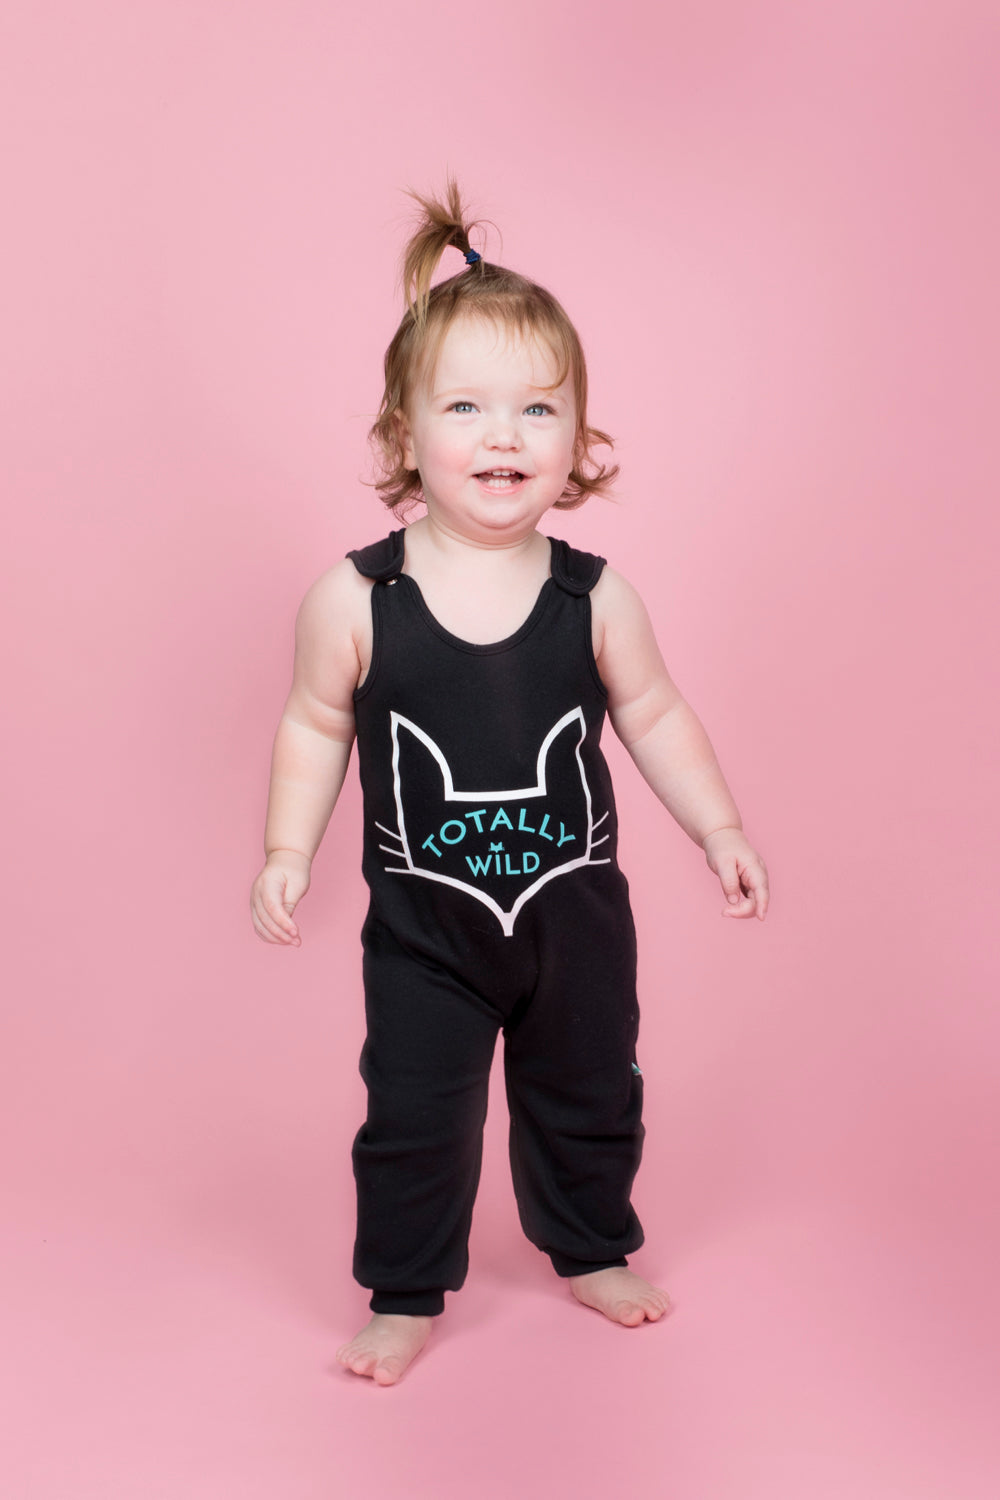 unisex organic baby romper sizes 6 to 24 months in brand logo fox head design